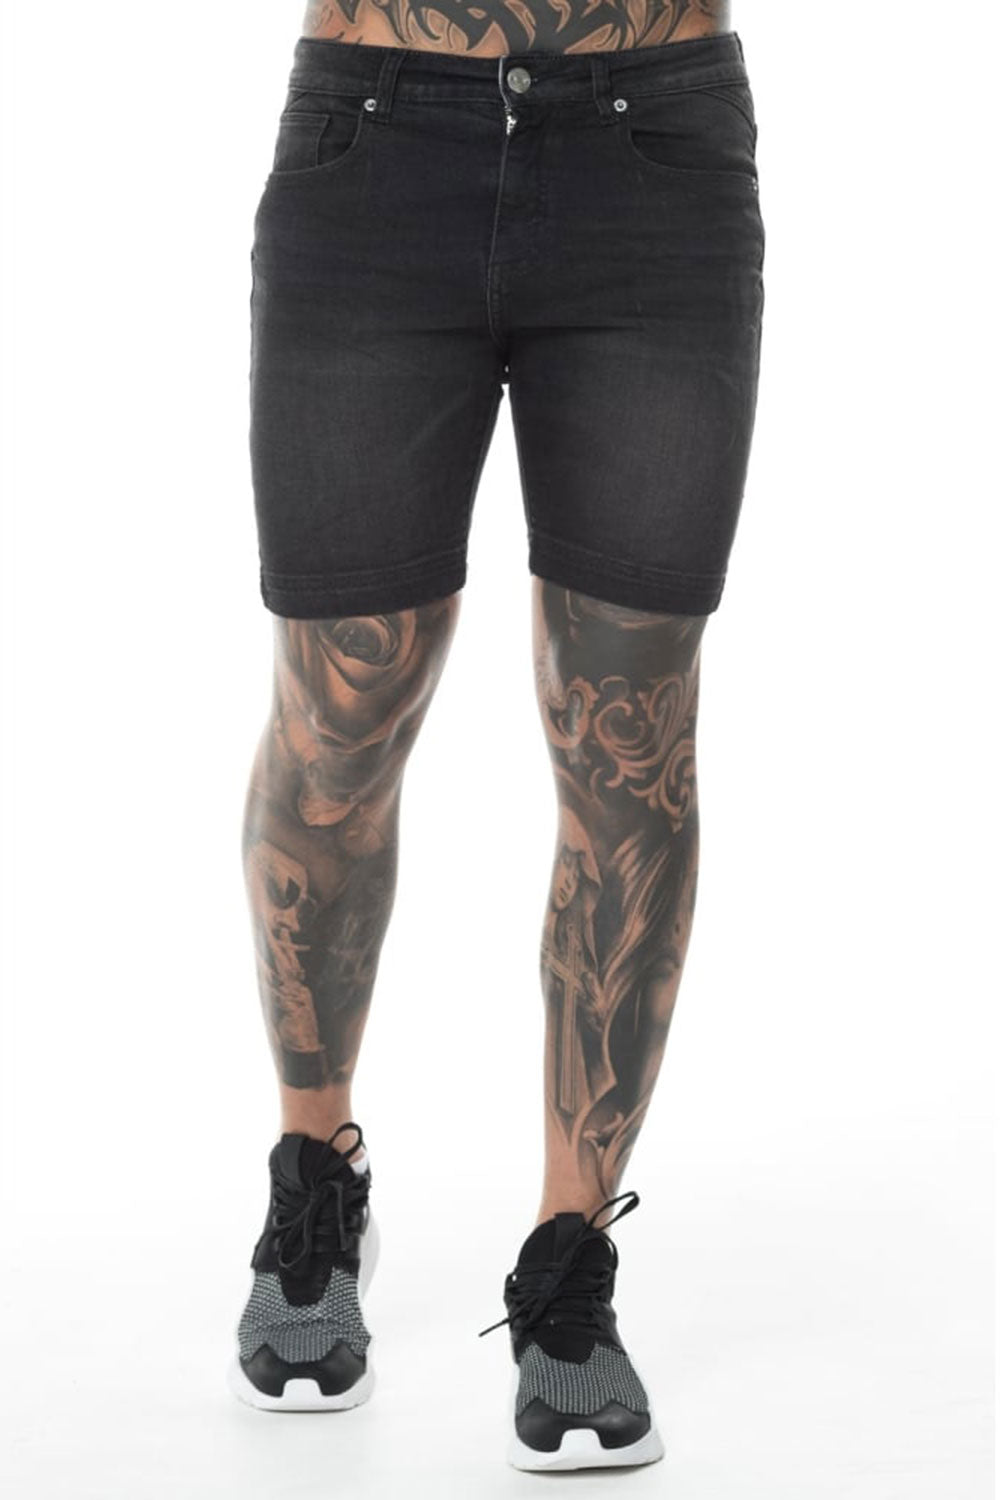 11 Degrees Essential Skinny Shorts - Washed Black